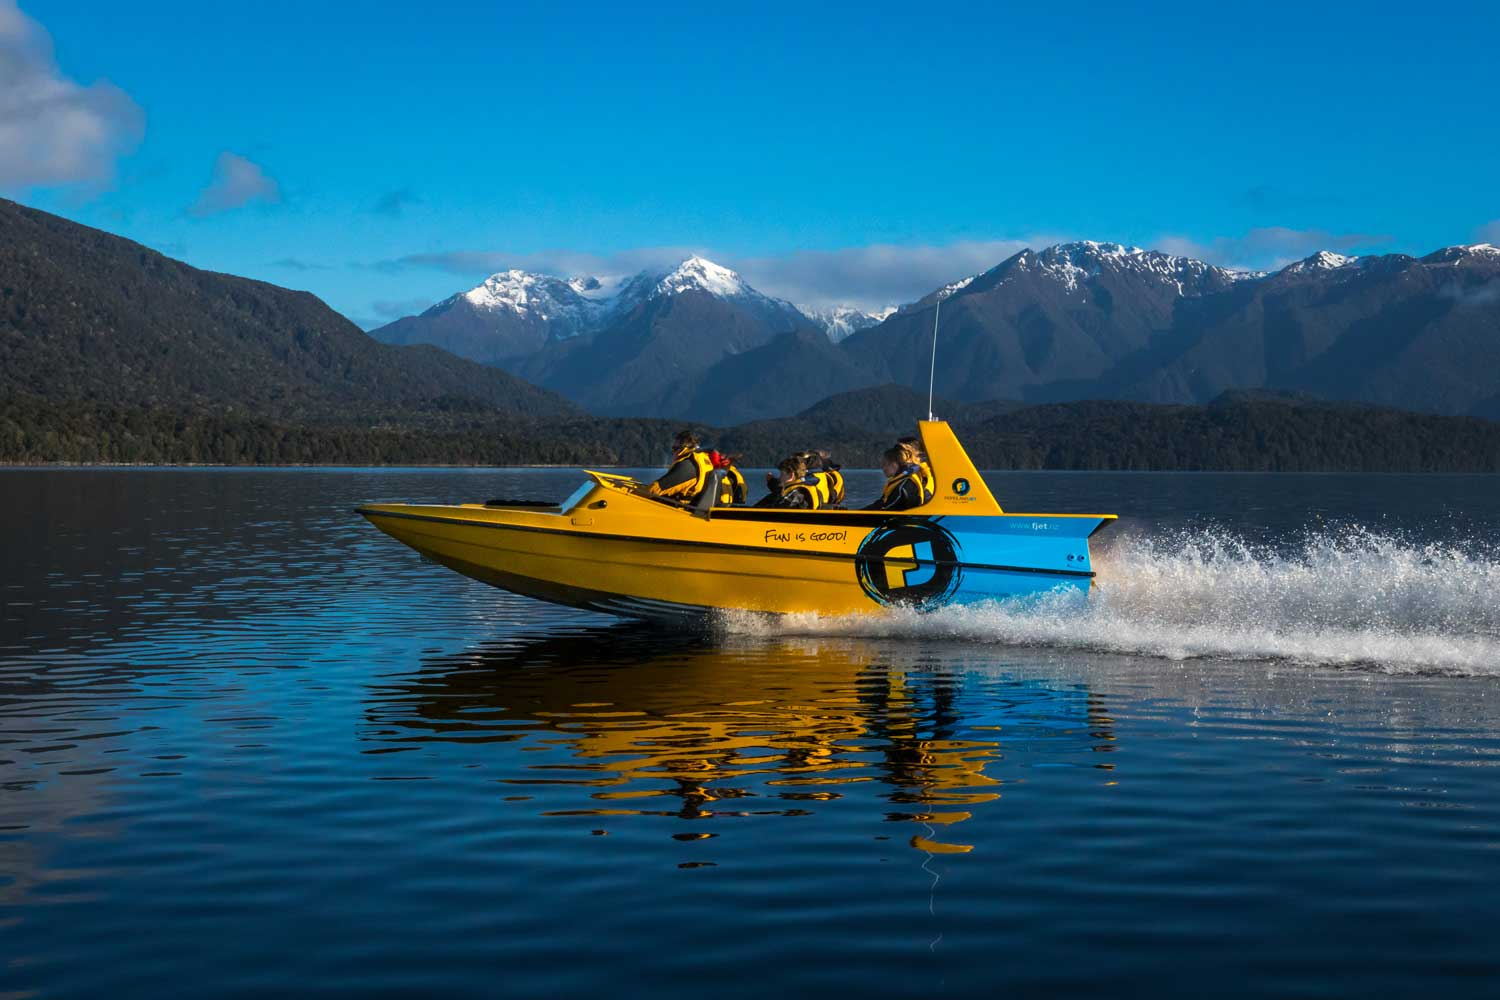 Closer shot of the Boat Lake Te anau